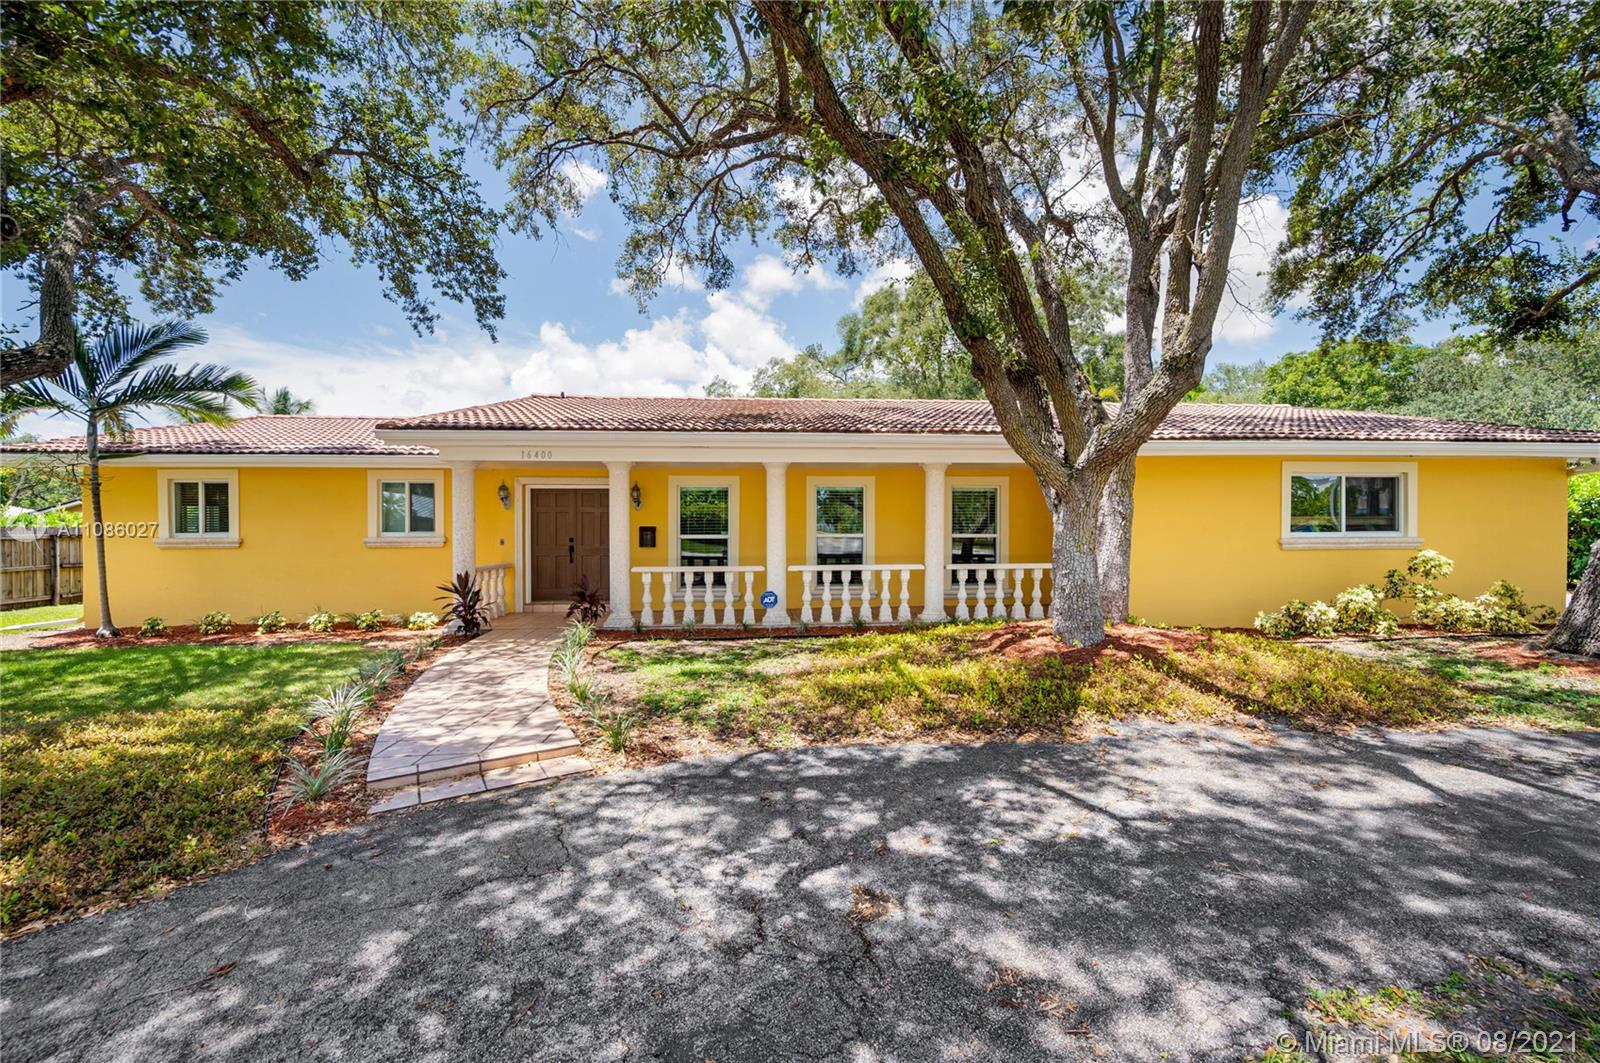 Gorgeous single family home in Palmetto Bay. An unbelievable potential for future investors or large families. Location is extremely exclusive, nearby pinecrest. With 5 bedrooms and 3 bathrooms, space will never be an issue. Large entertainment backyard with a swimming pool and beautiful landscape. Come check this property out. It won't last long on the exclusive market.